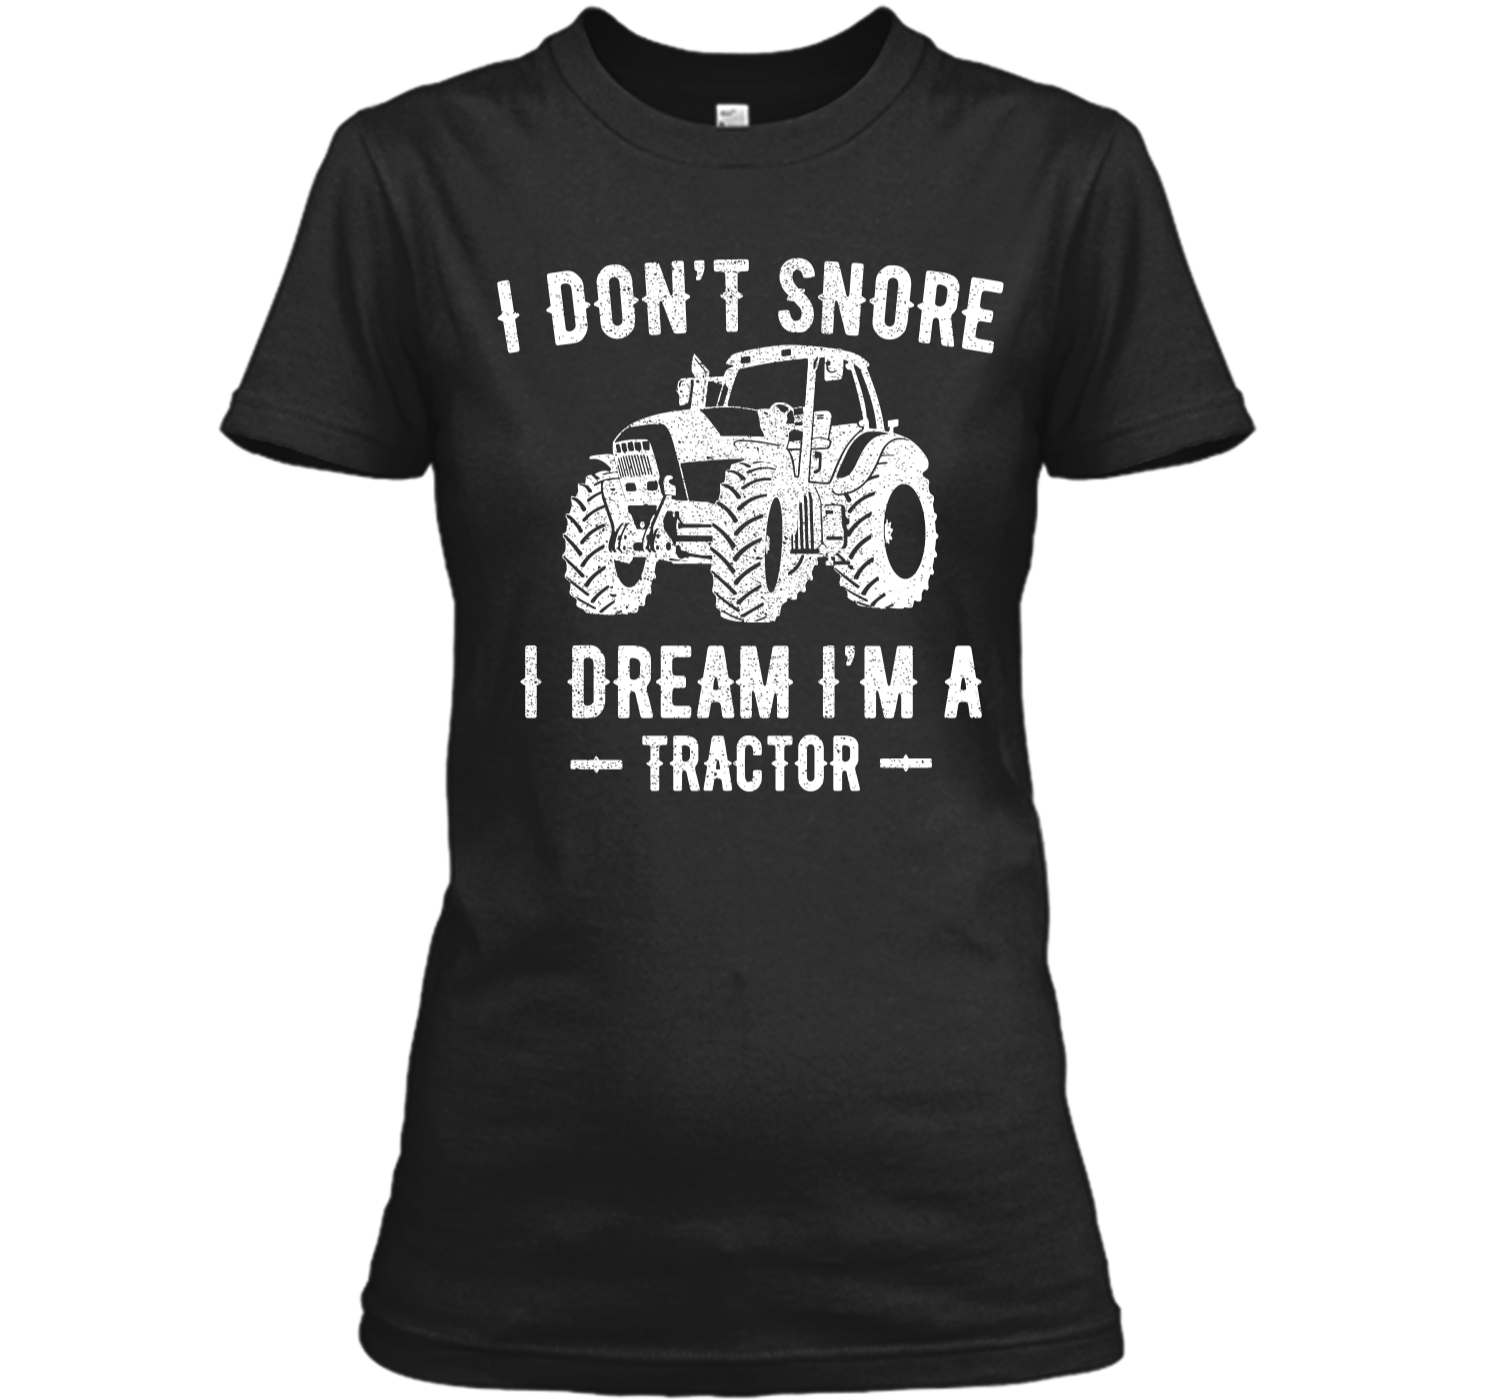 ede6f63a5 Funny I Dont Snore I Dream Im a Tractor Shirt For Dad Ladies Custom ...